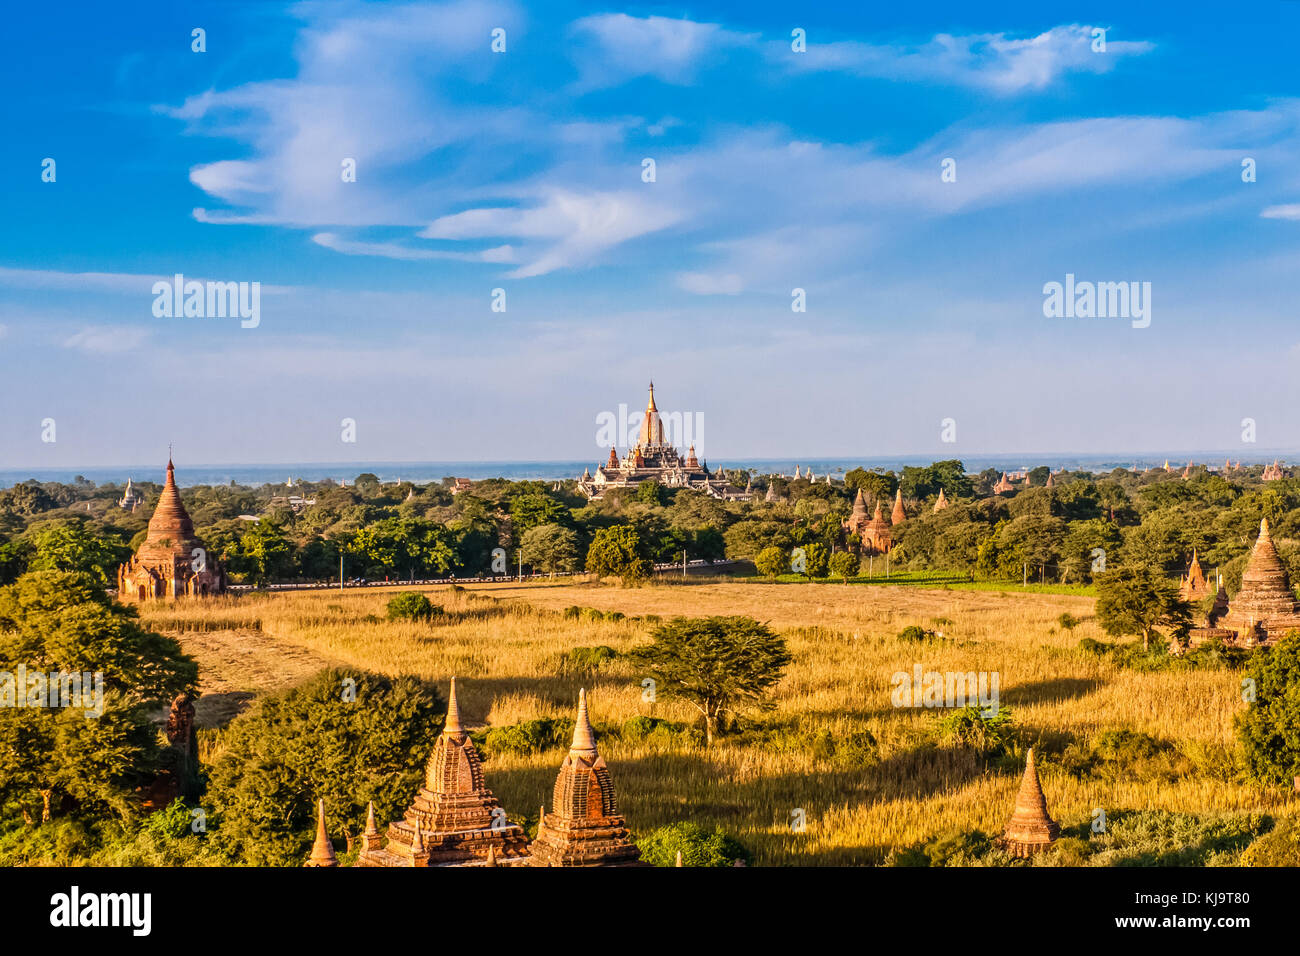 Pagodas of Old Bagan with the Ananda Temple, Myanmar - Stock Image